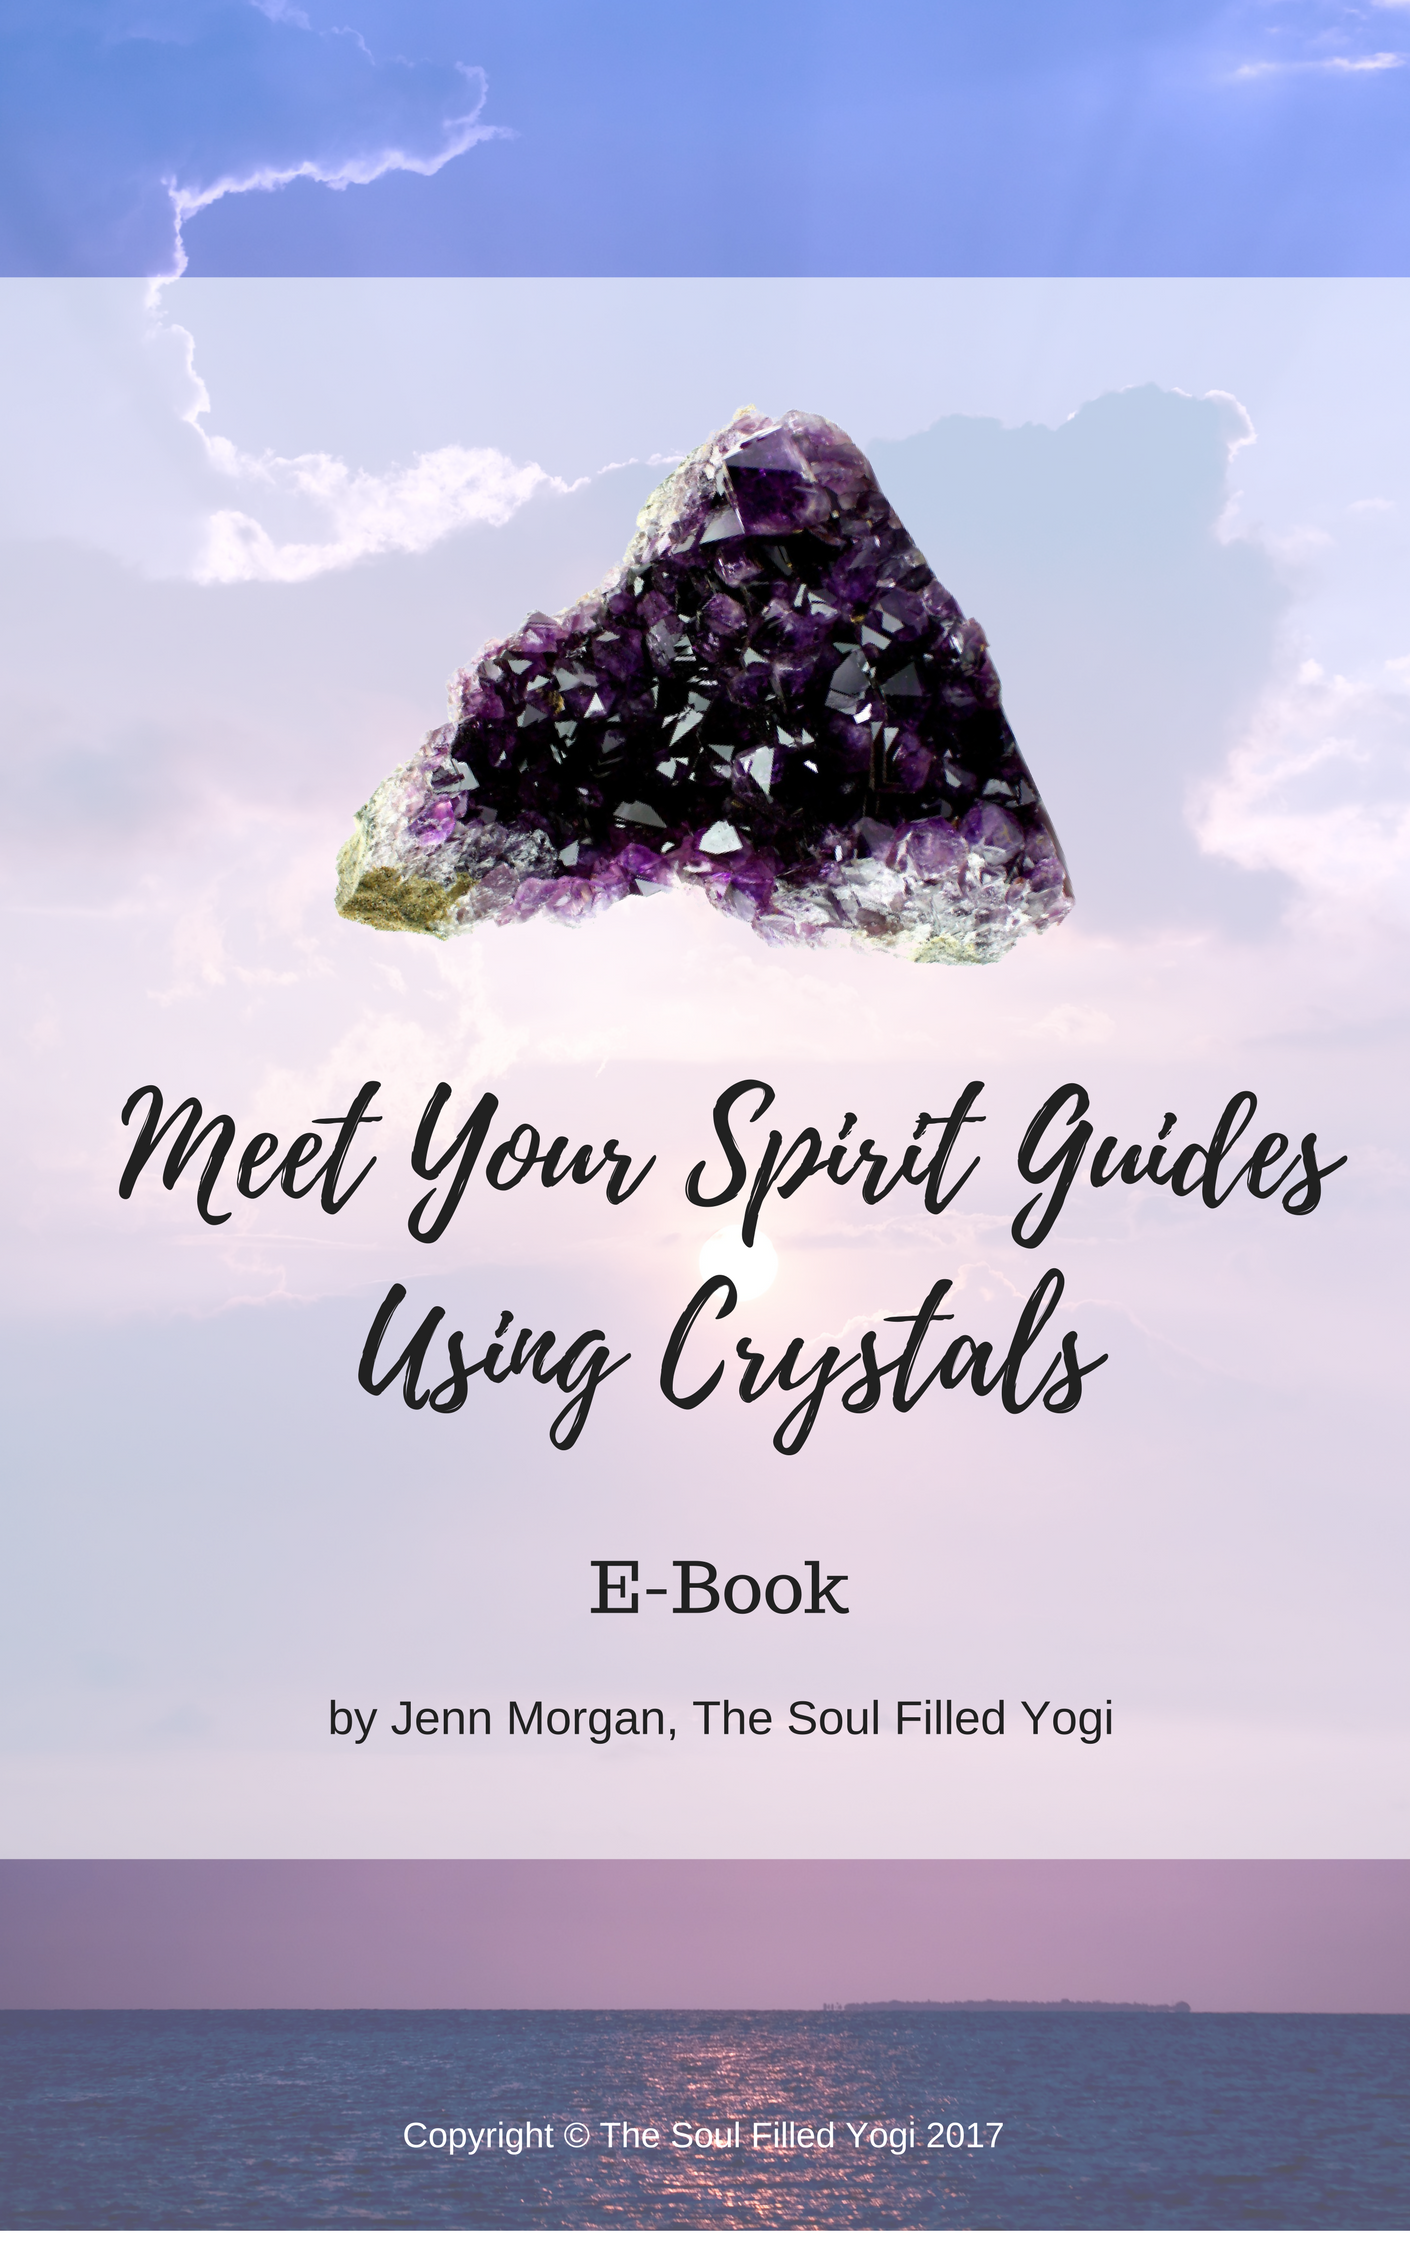 Meet Your Spirit Guides Using Crystals E-Book (Instant Download) 00003